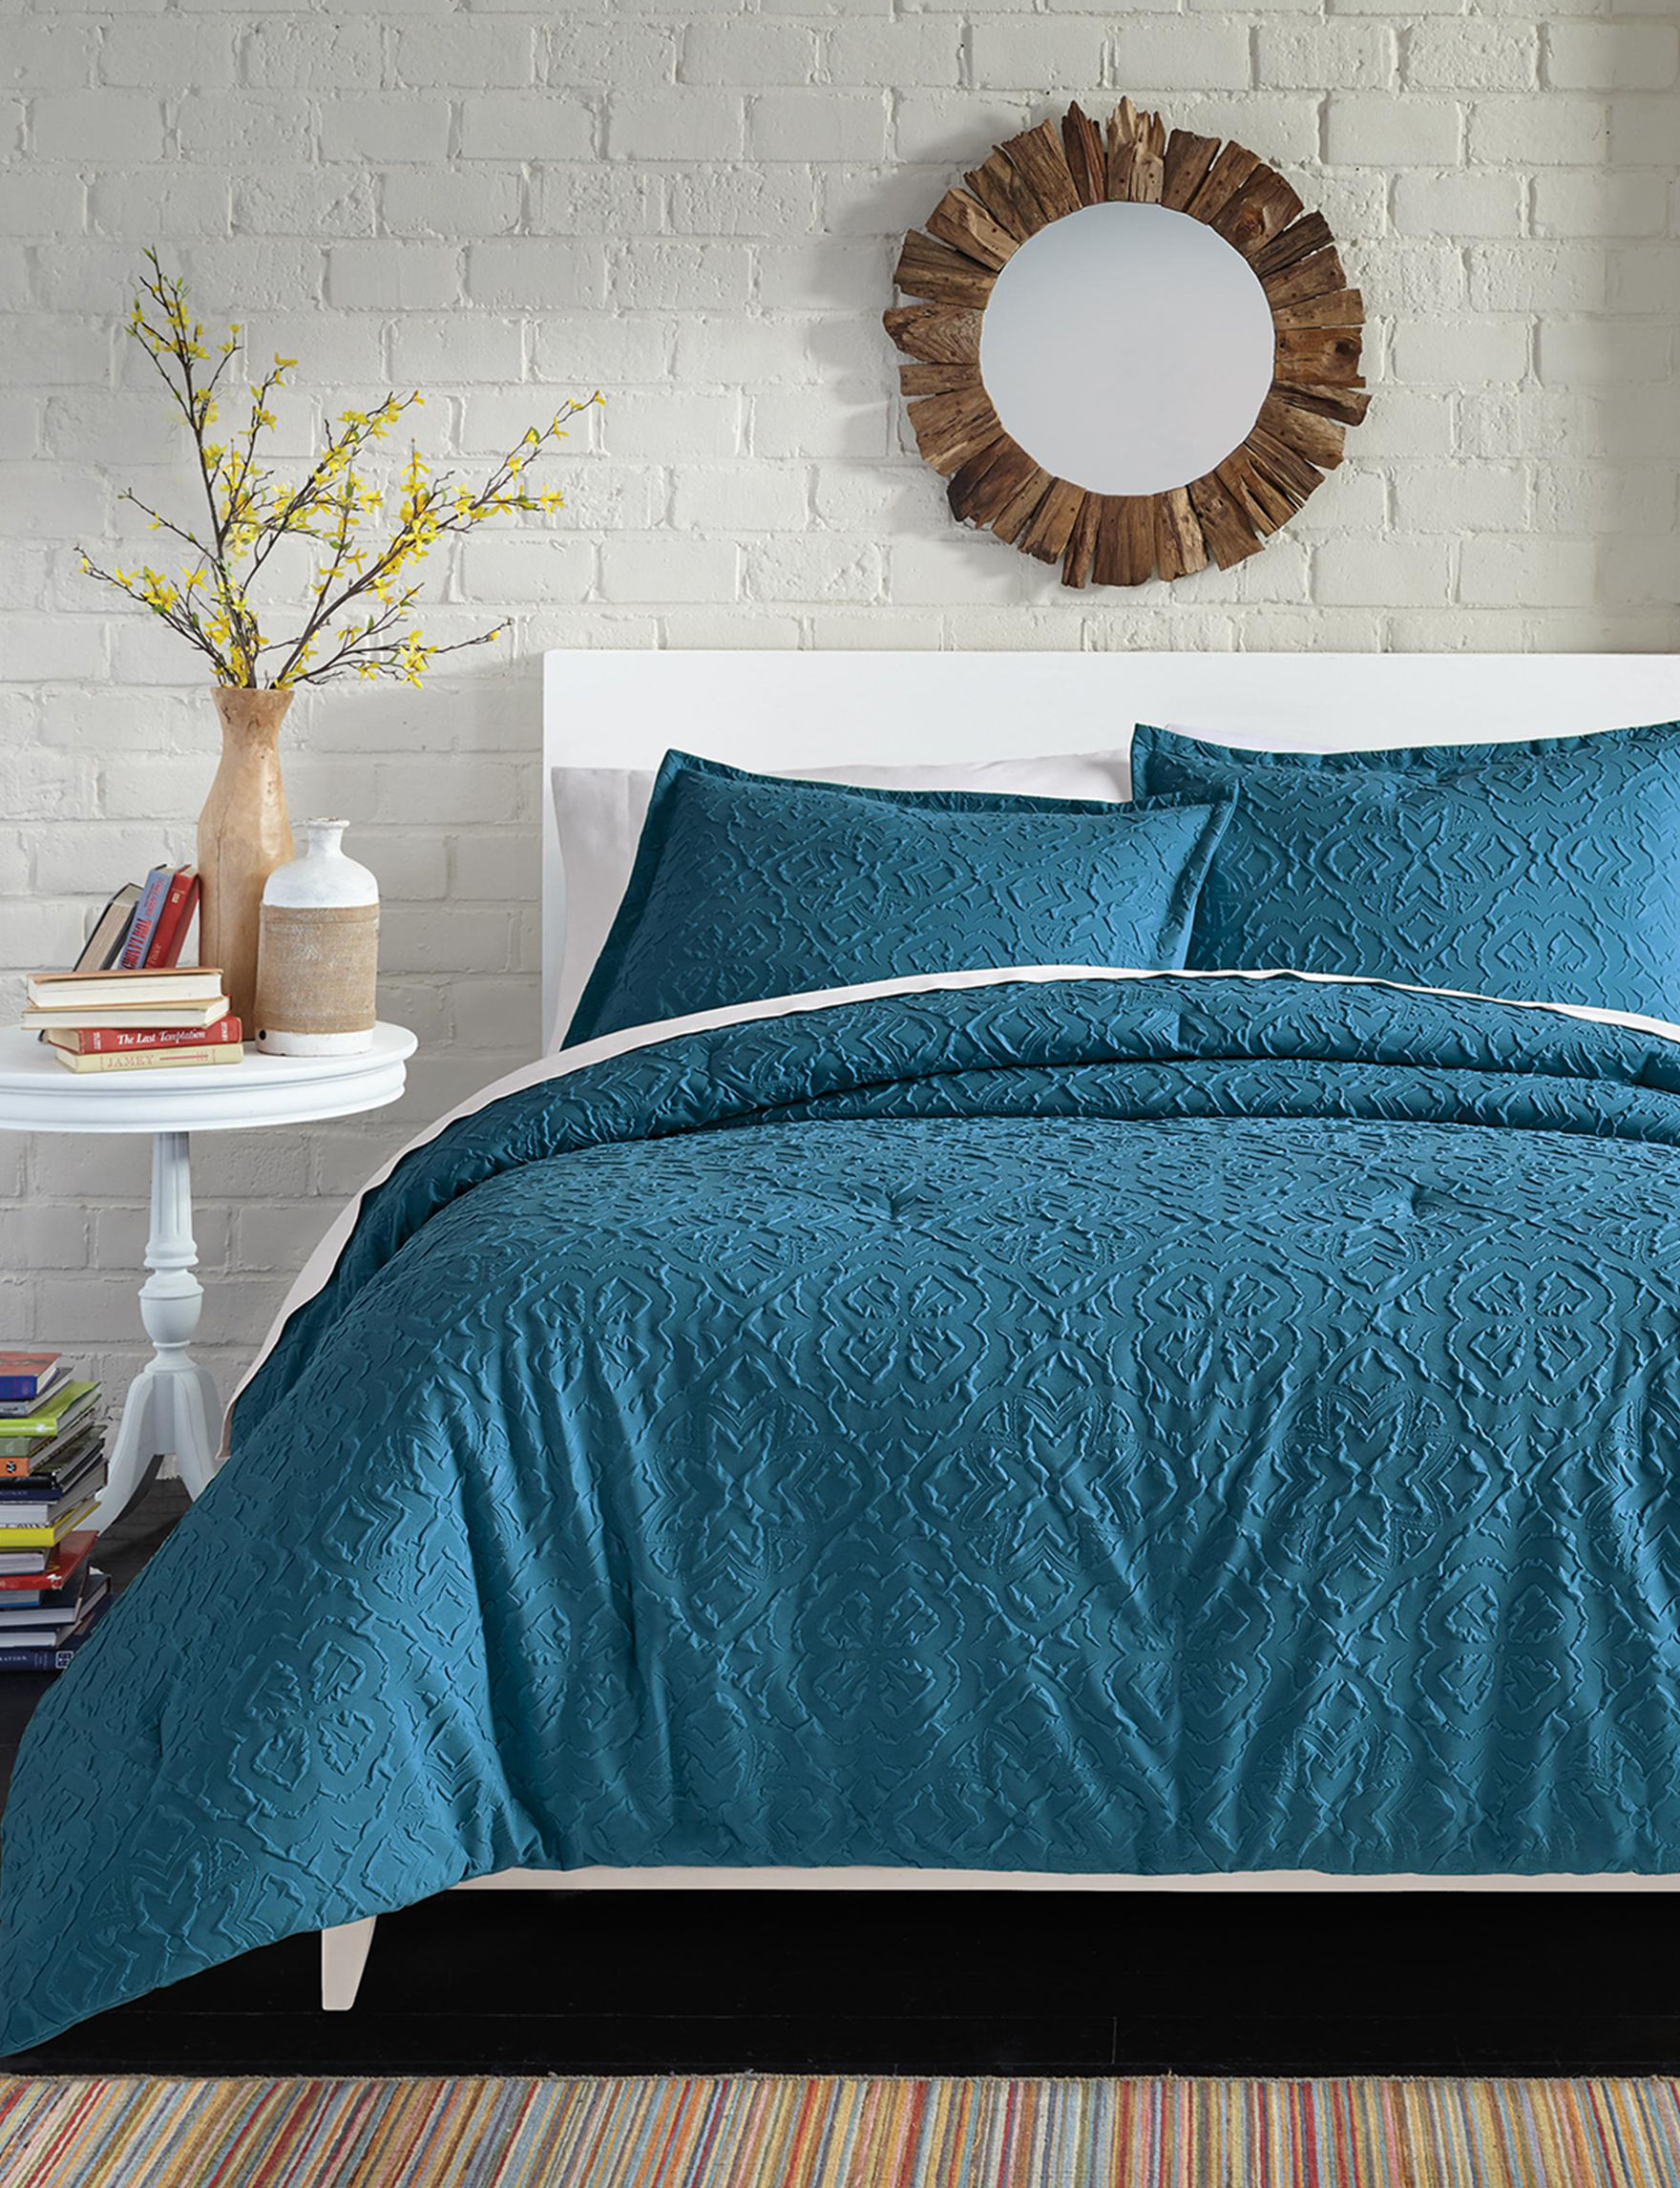 Great Hotels Collection Peacock Comforters & Comforter Sets